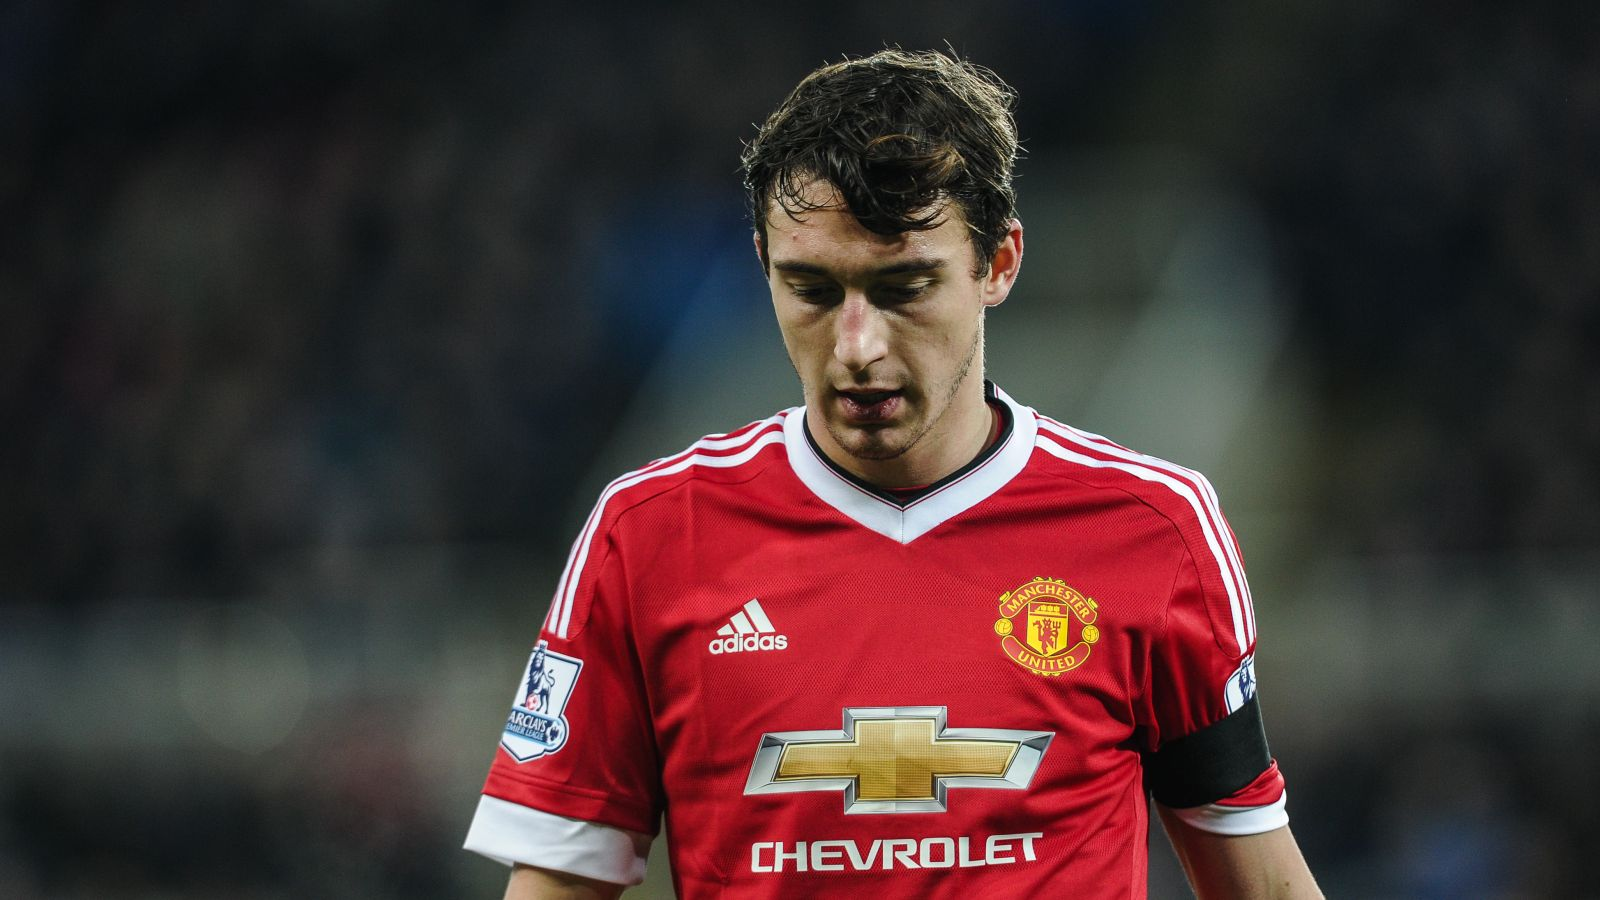 Darmian insists he is happy at United amid Serie A links